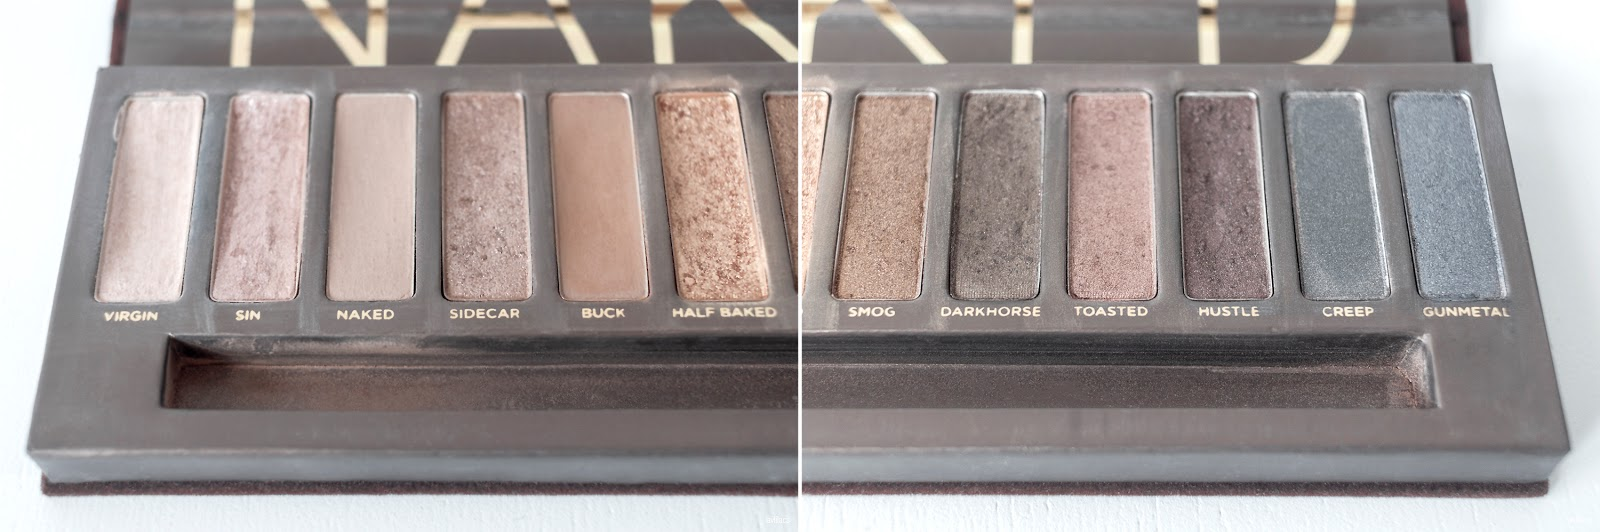 lavlilacs 2018 Project Make a Dent - half year - Urban Decay Naked Palette